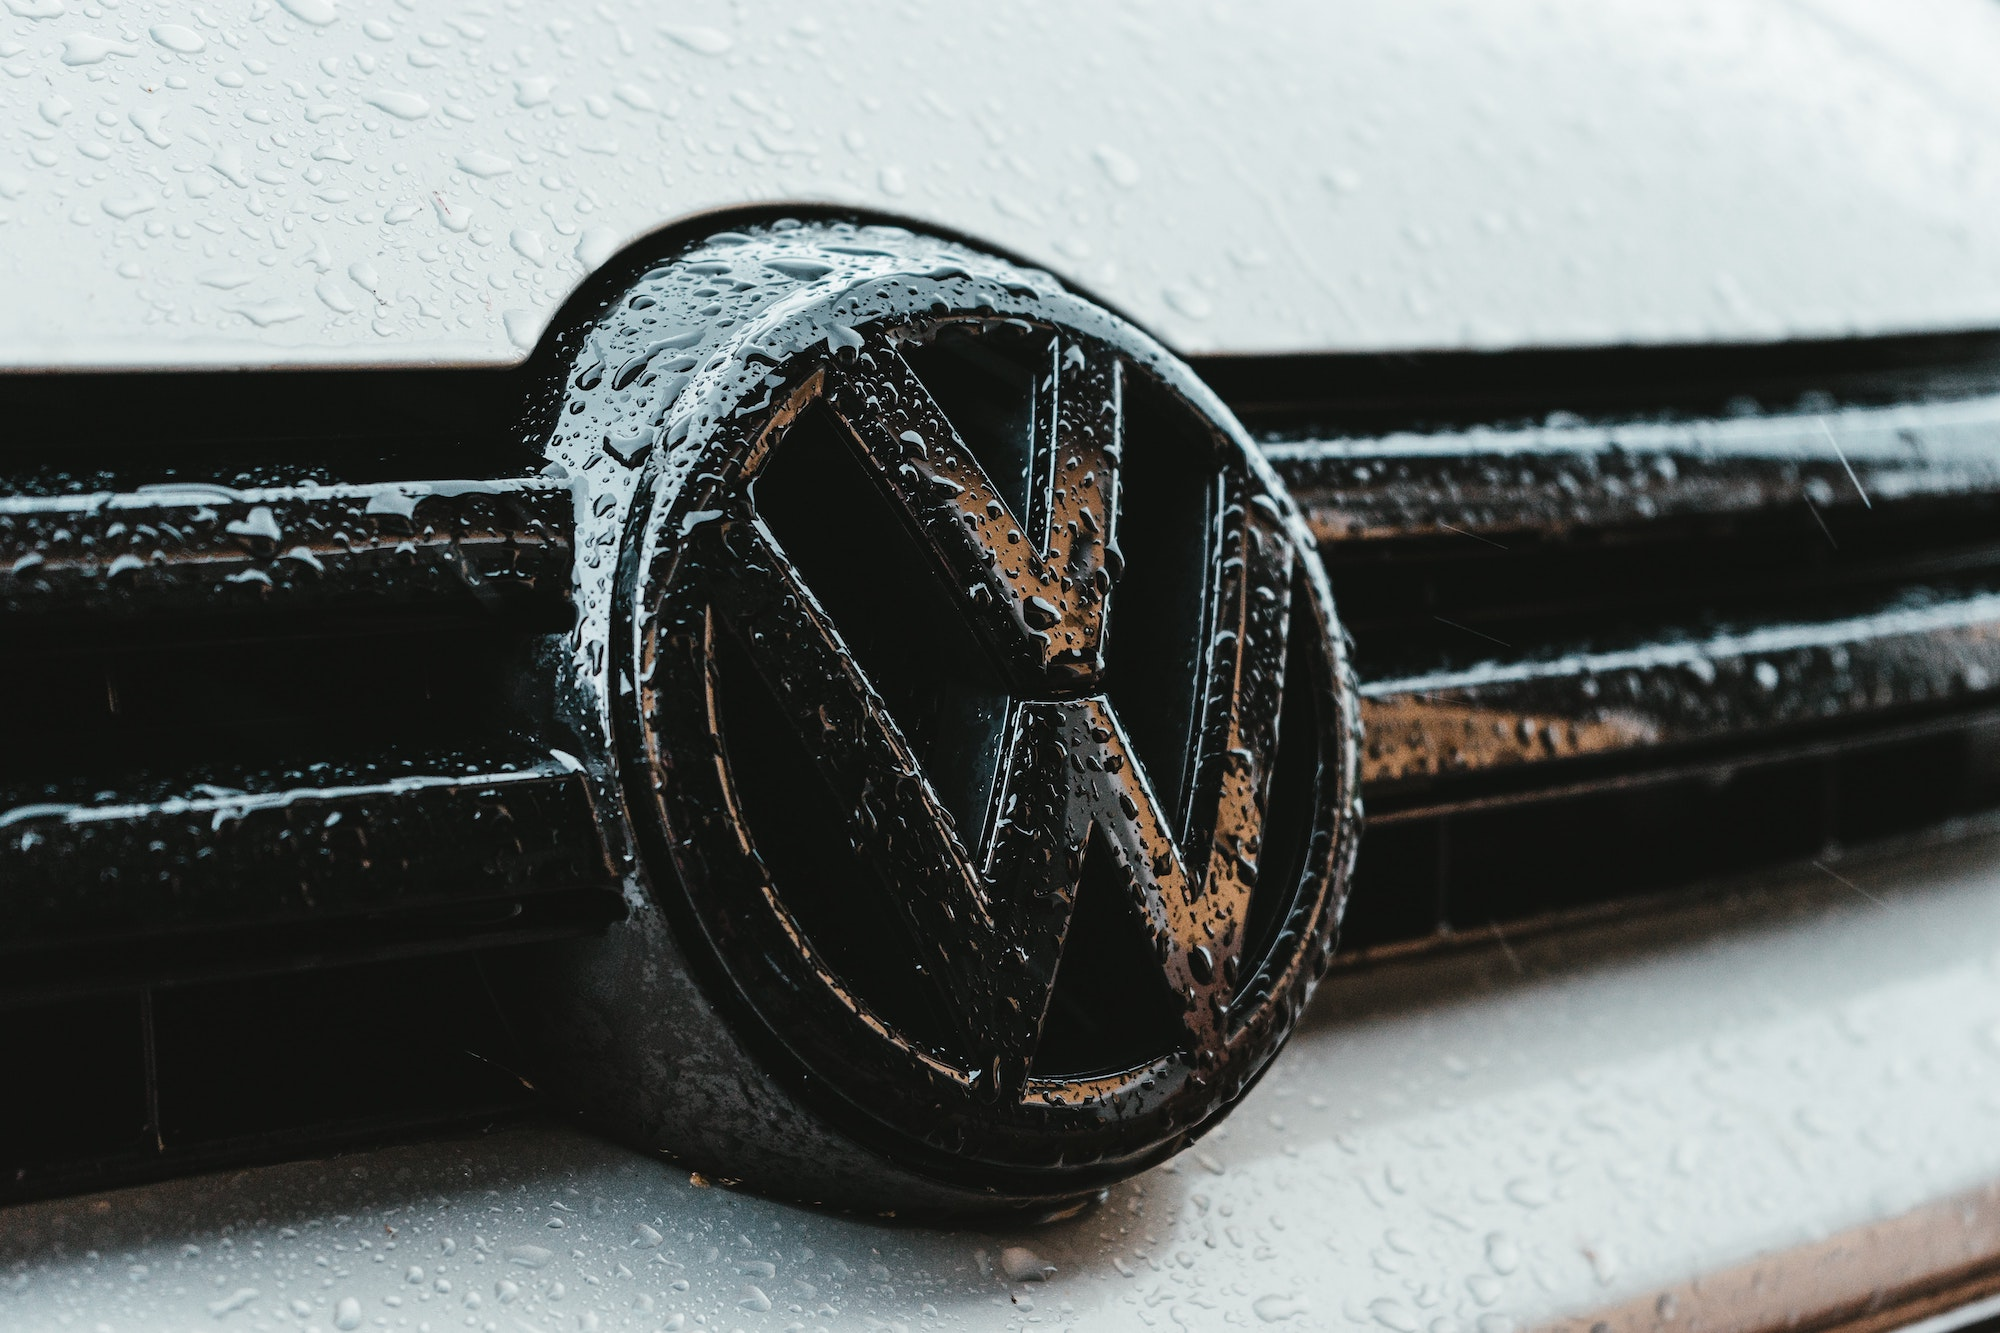 Transforming Volkswagen Financial Services